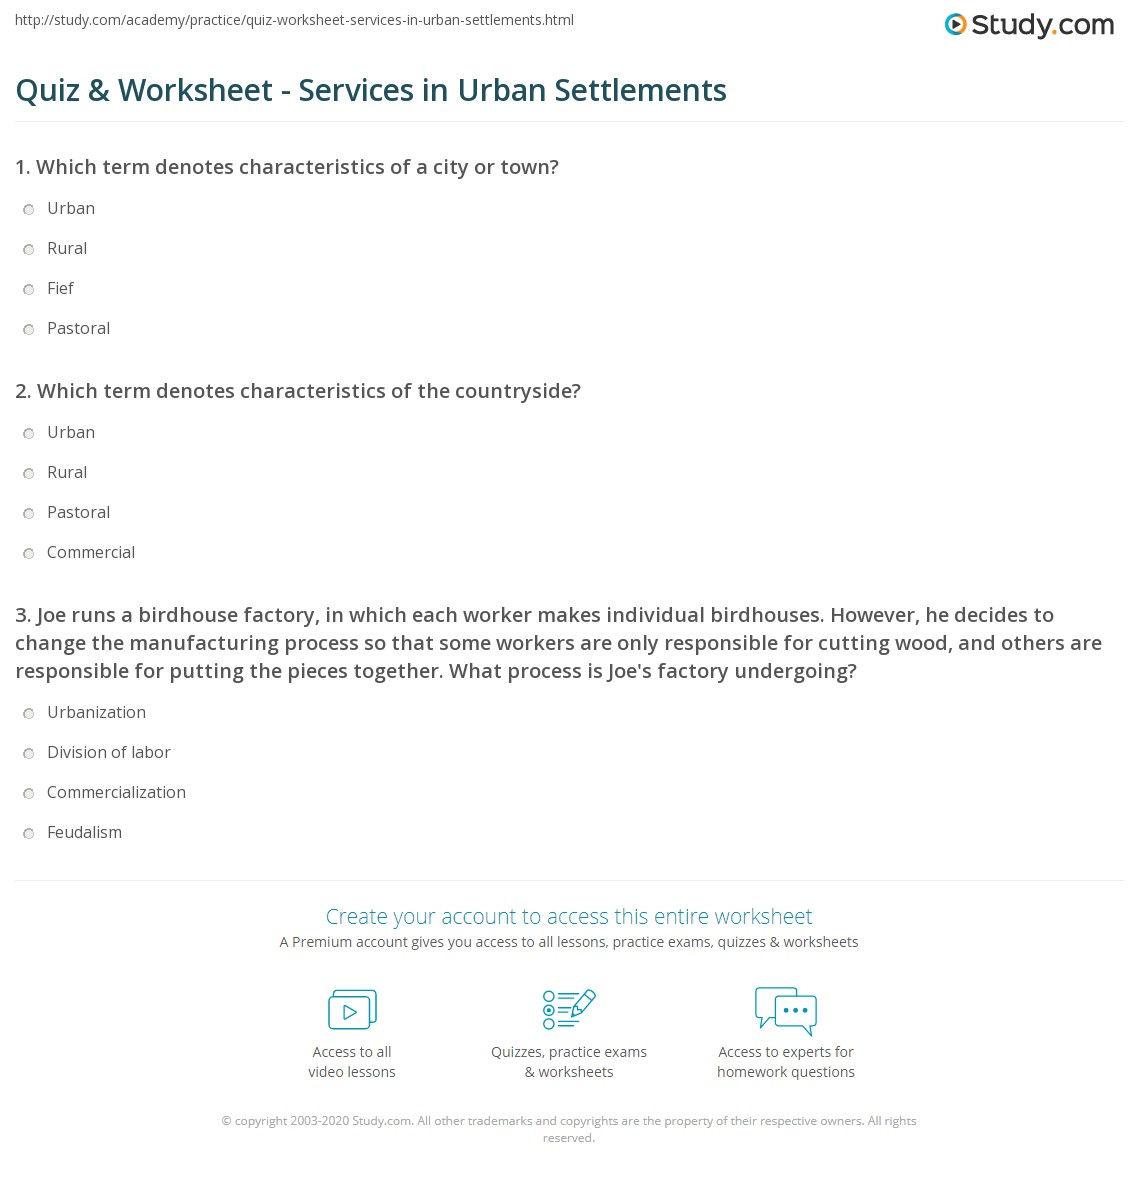 quiz worksheet services in urban settlements